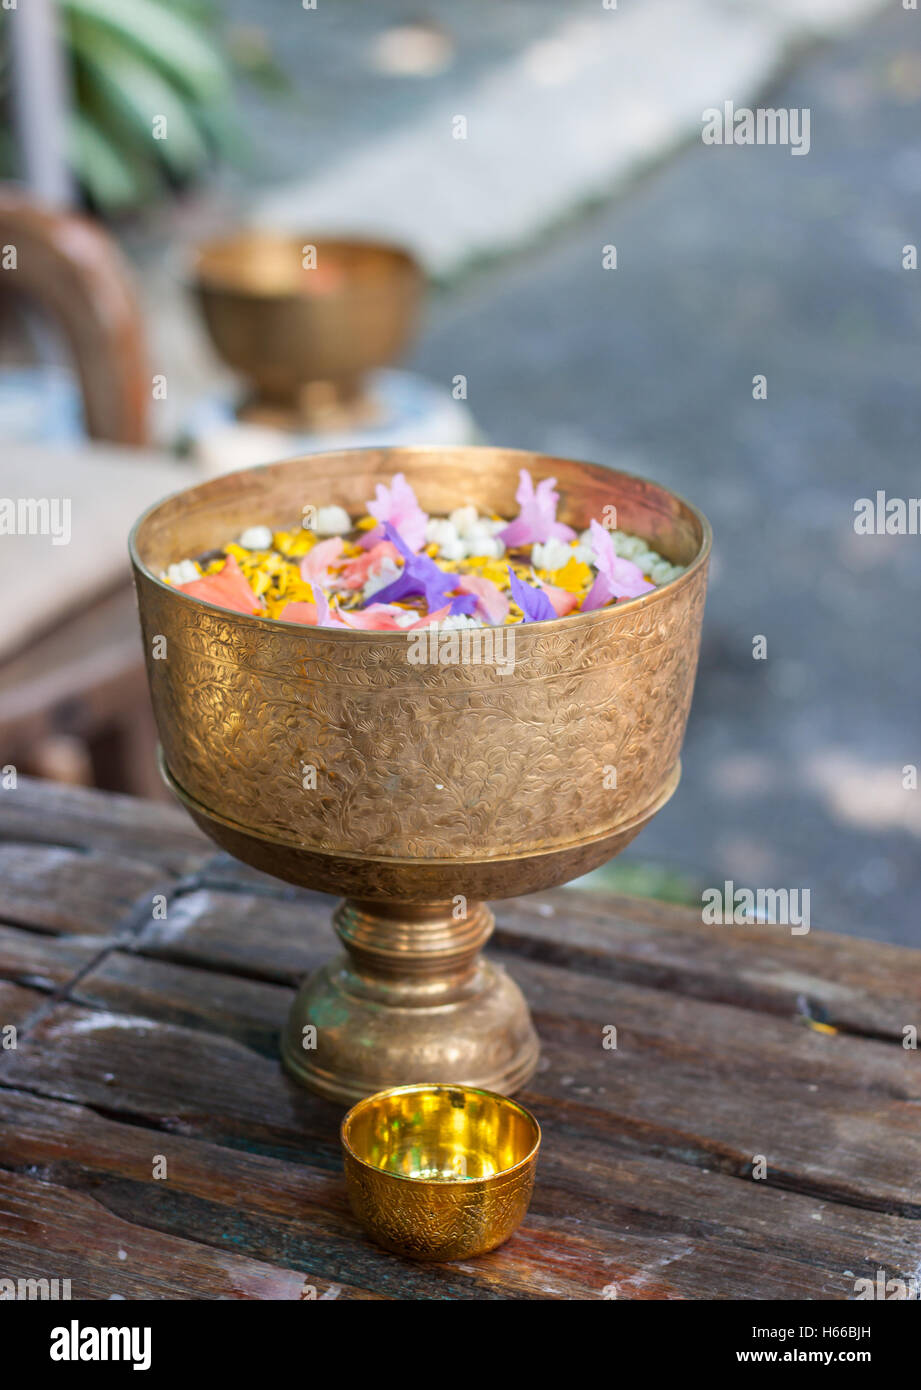 Songkran festival in Thailand, mixed flower and perfume in the bowl - Stock Image